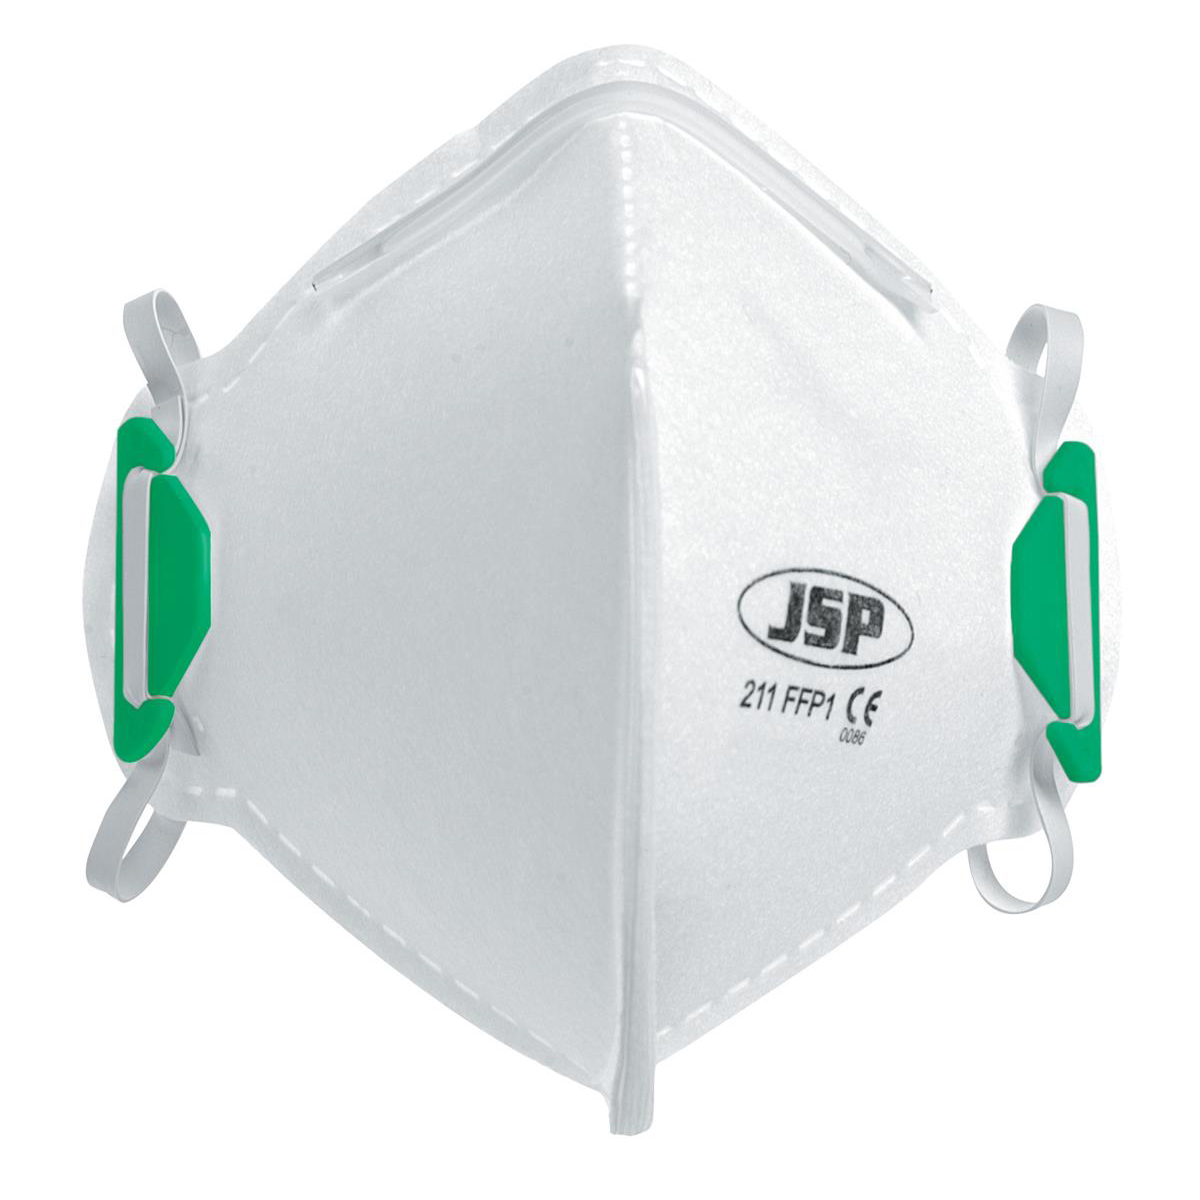 JSP Disposable Mask Fold-flat FFP1 Class 1 EN149:2001 & A1:2009 Standard Ref BEA110-101-000 [Pack 20]